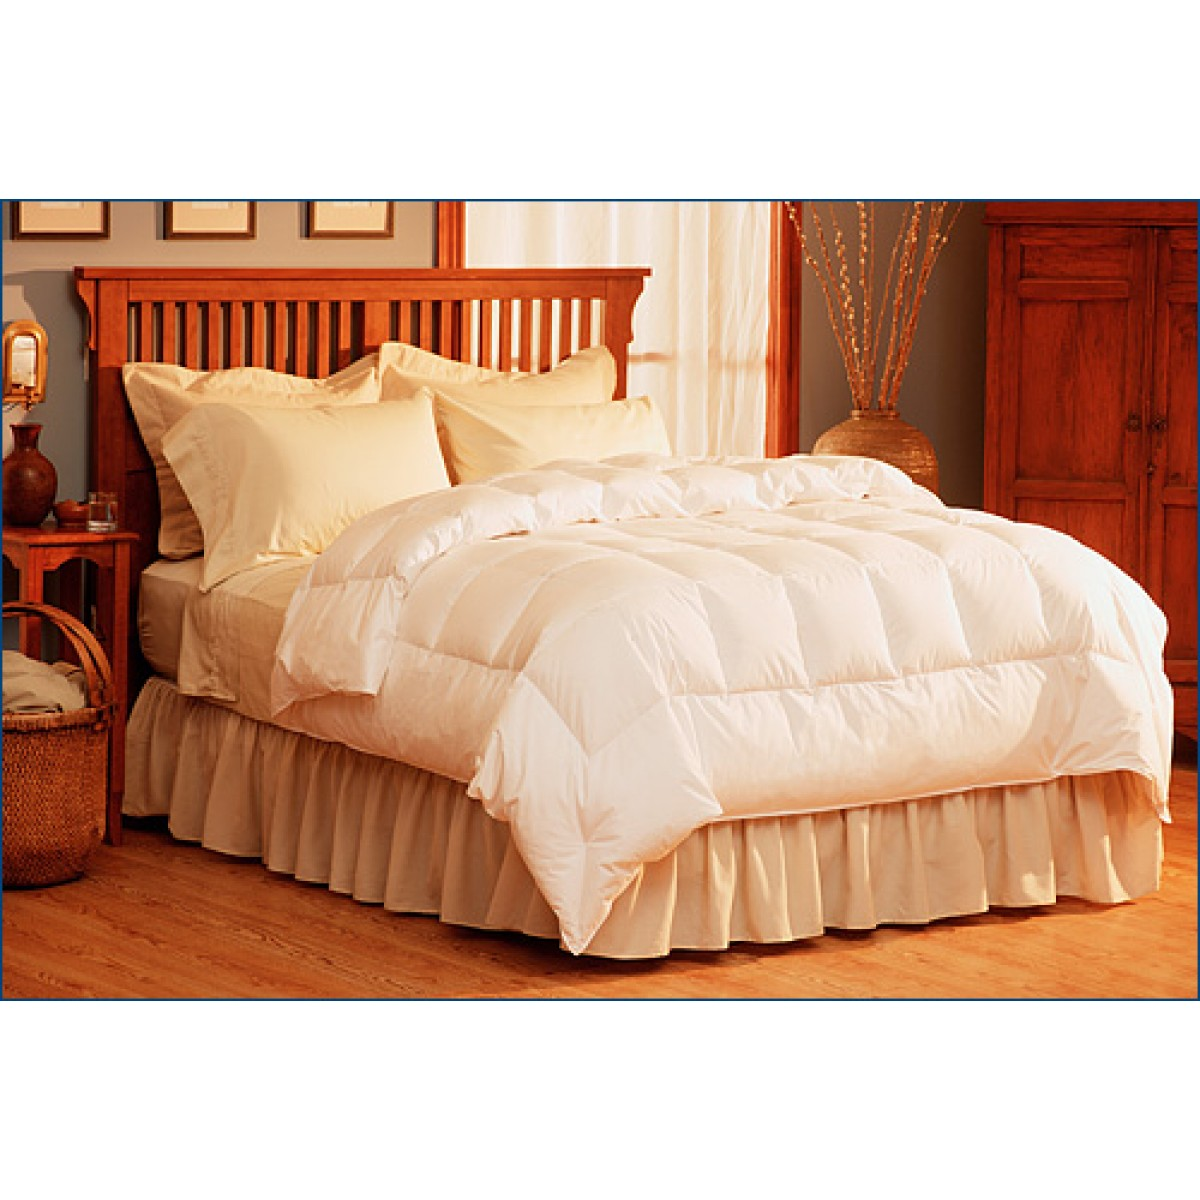 Thin Comforter | Costco Bedding | Pacific Coast Comforter